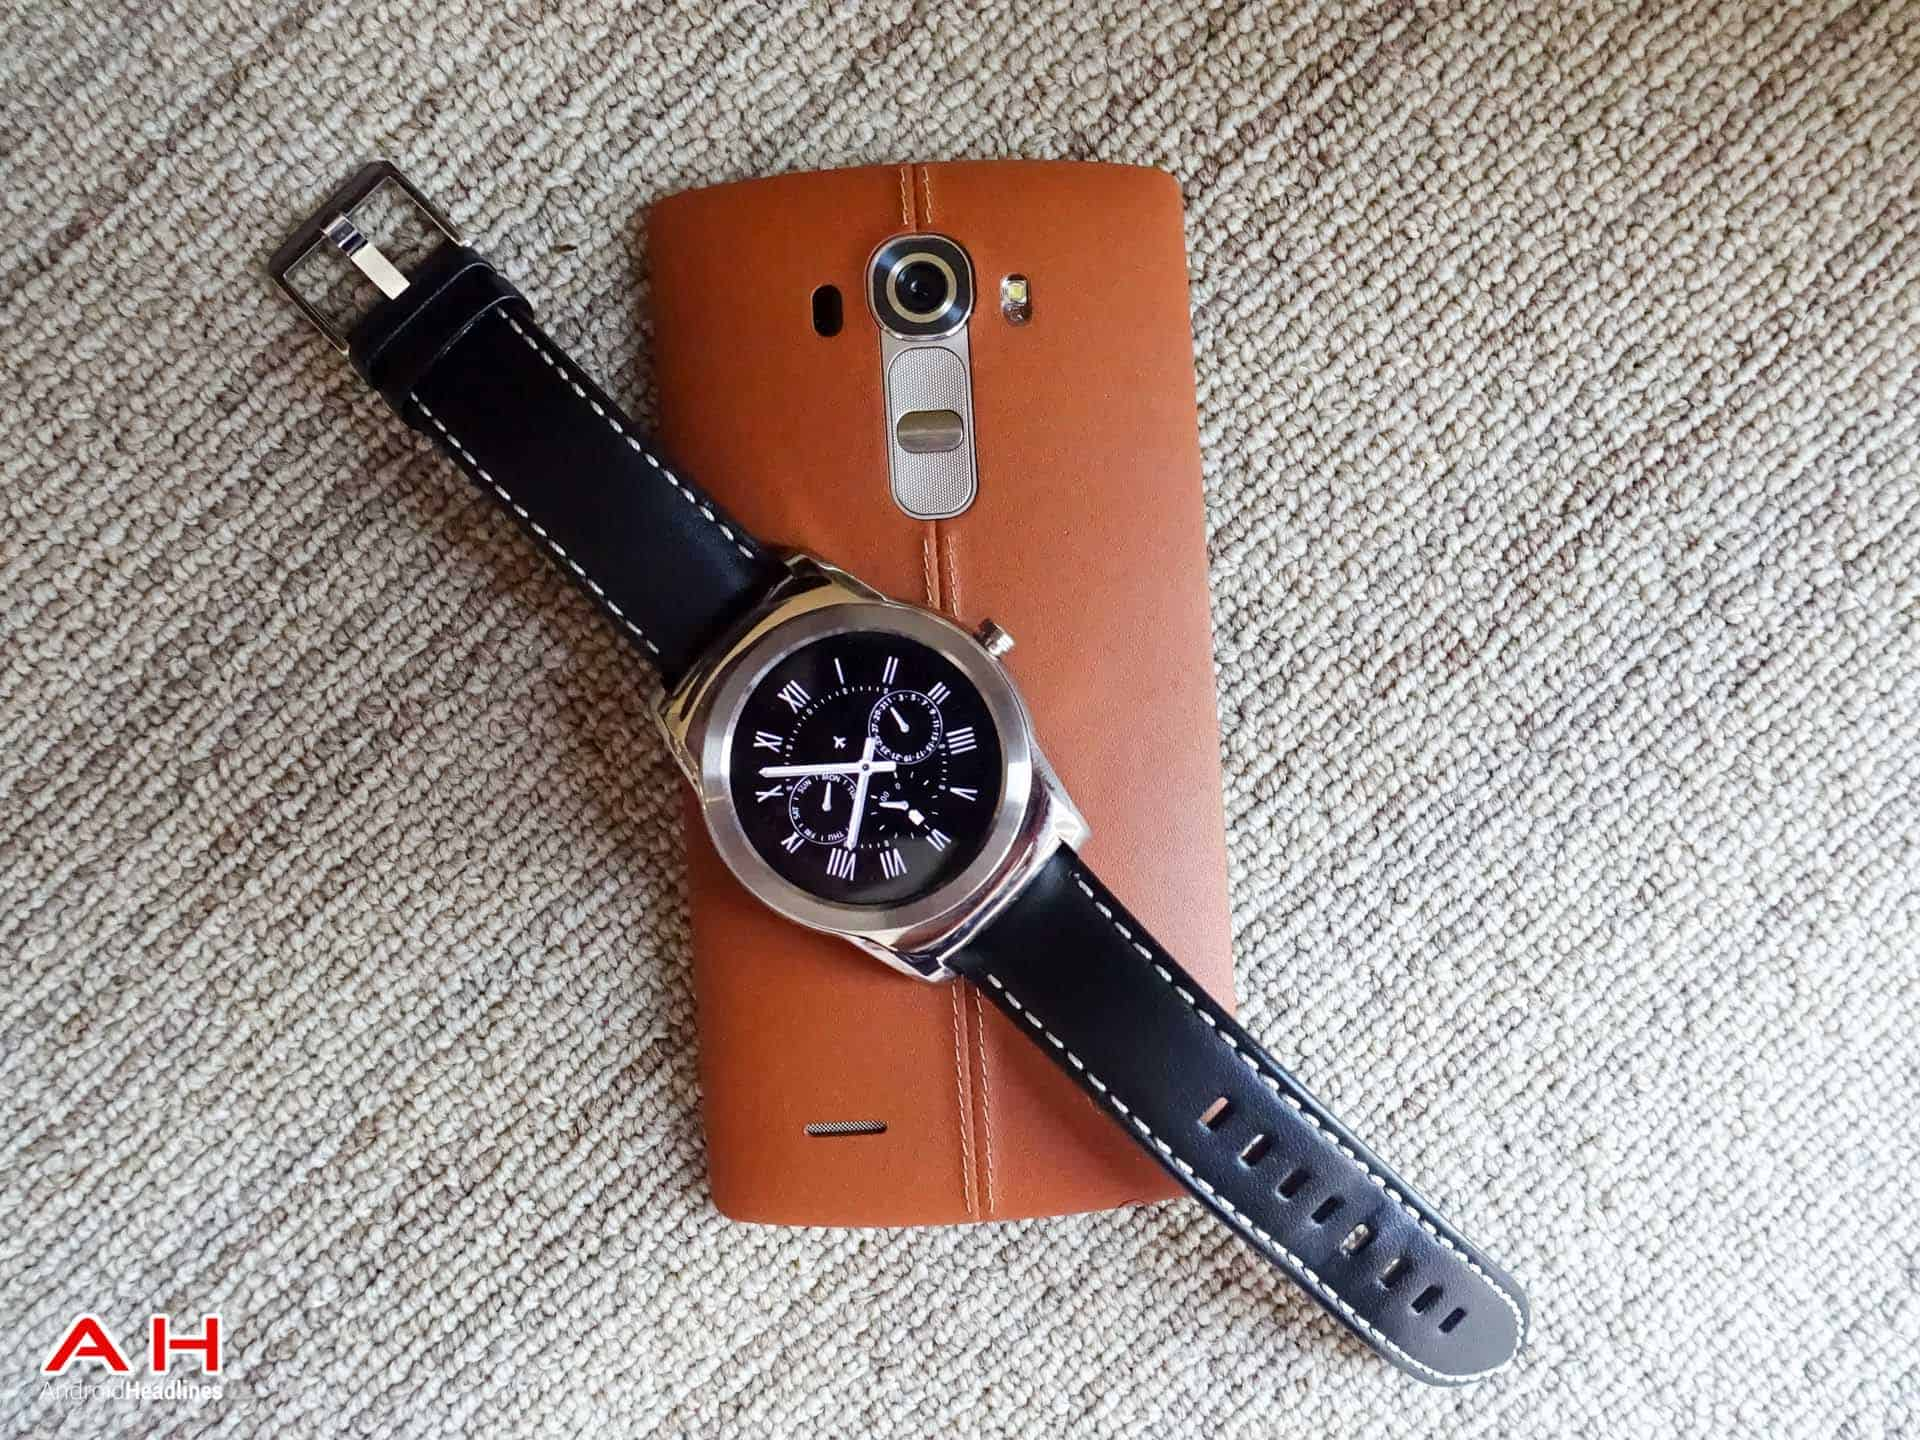 LG-Watch-Urbane-Review-AH-1